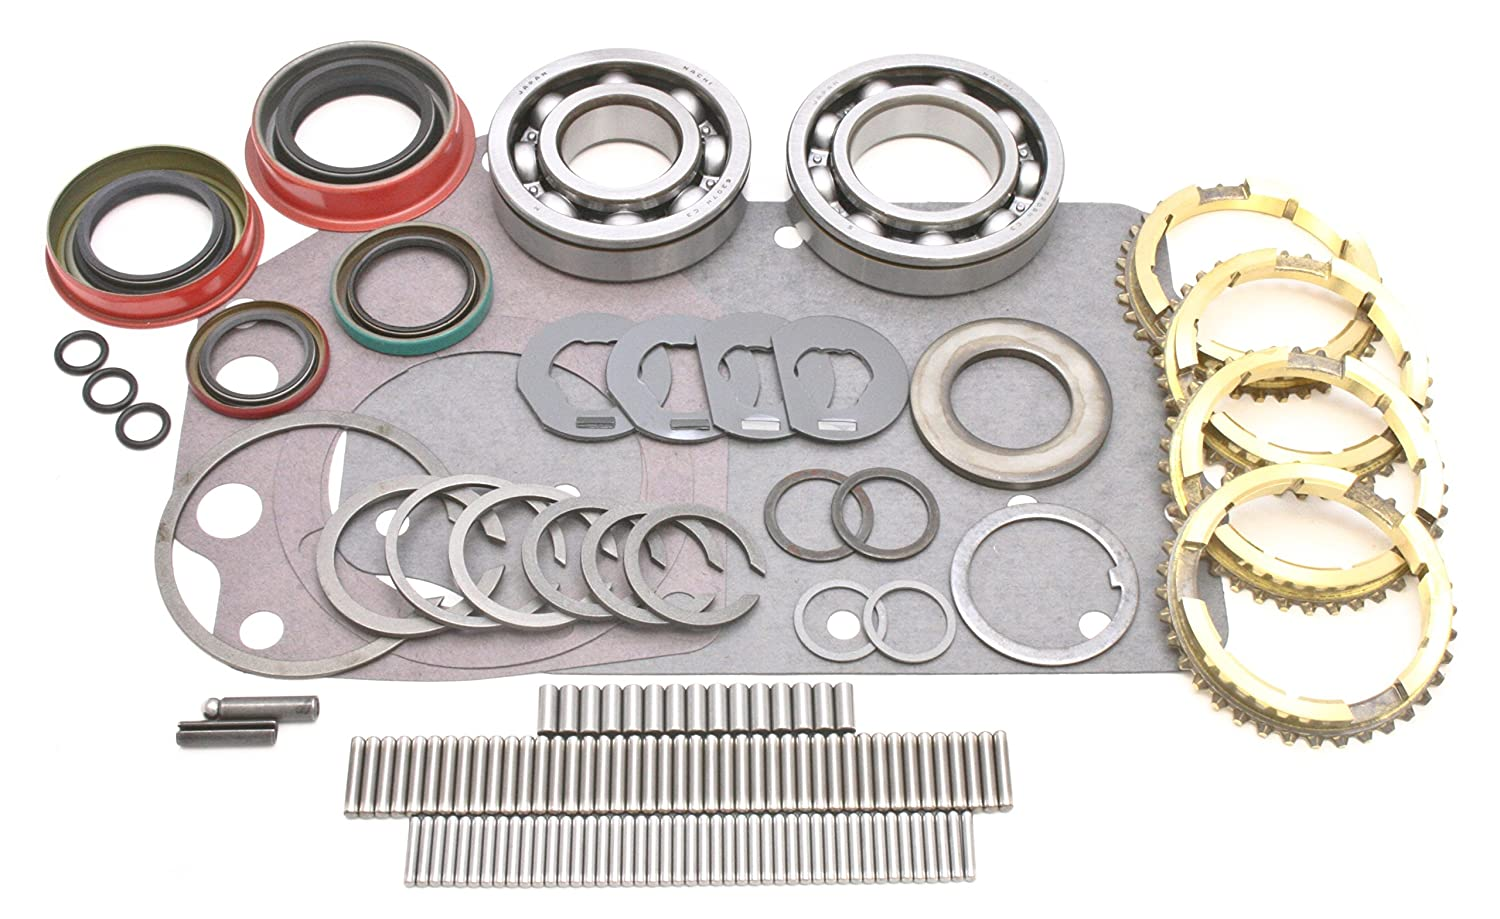 Transparts Warehouse BK135WS Ford Toploader Transmission Rebuild Kit with Rings